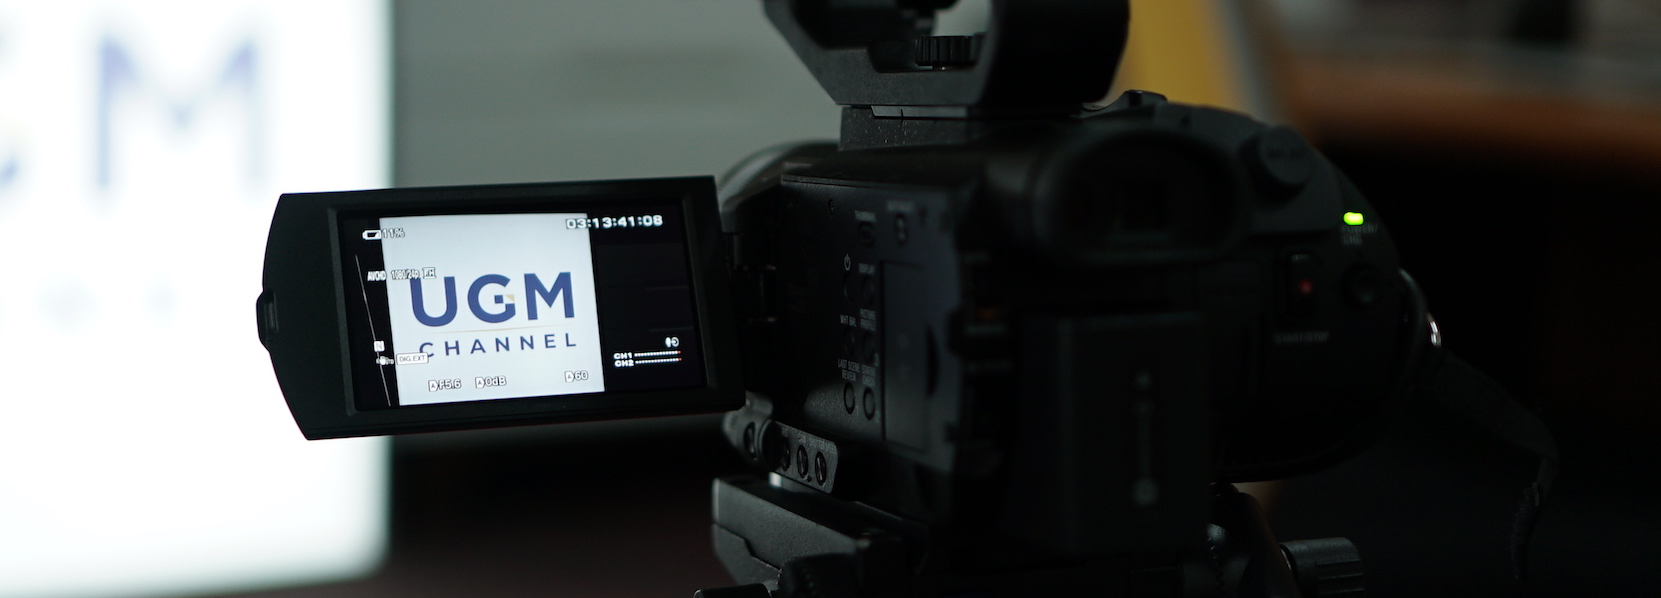 UGM Channel